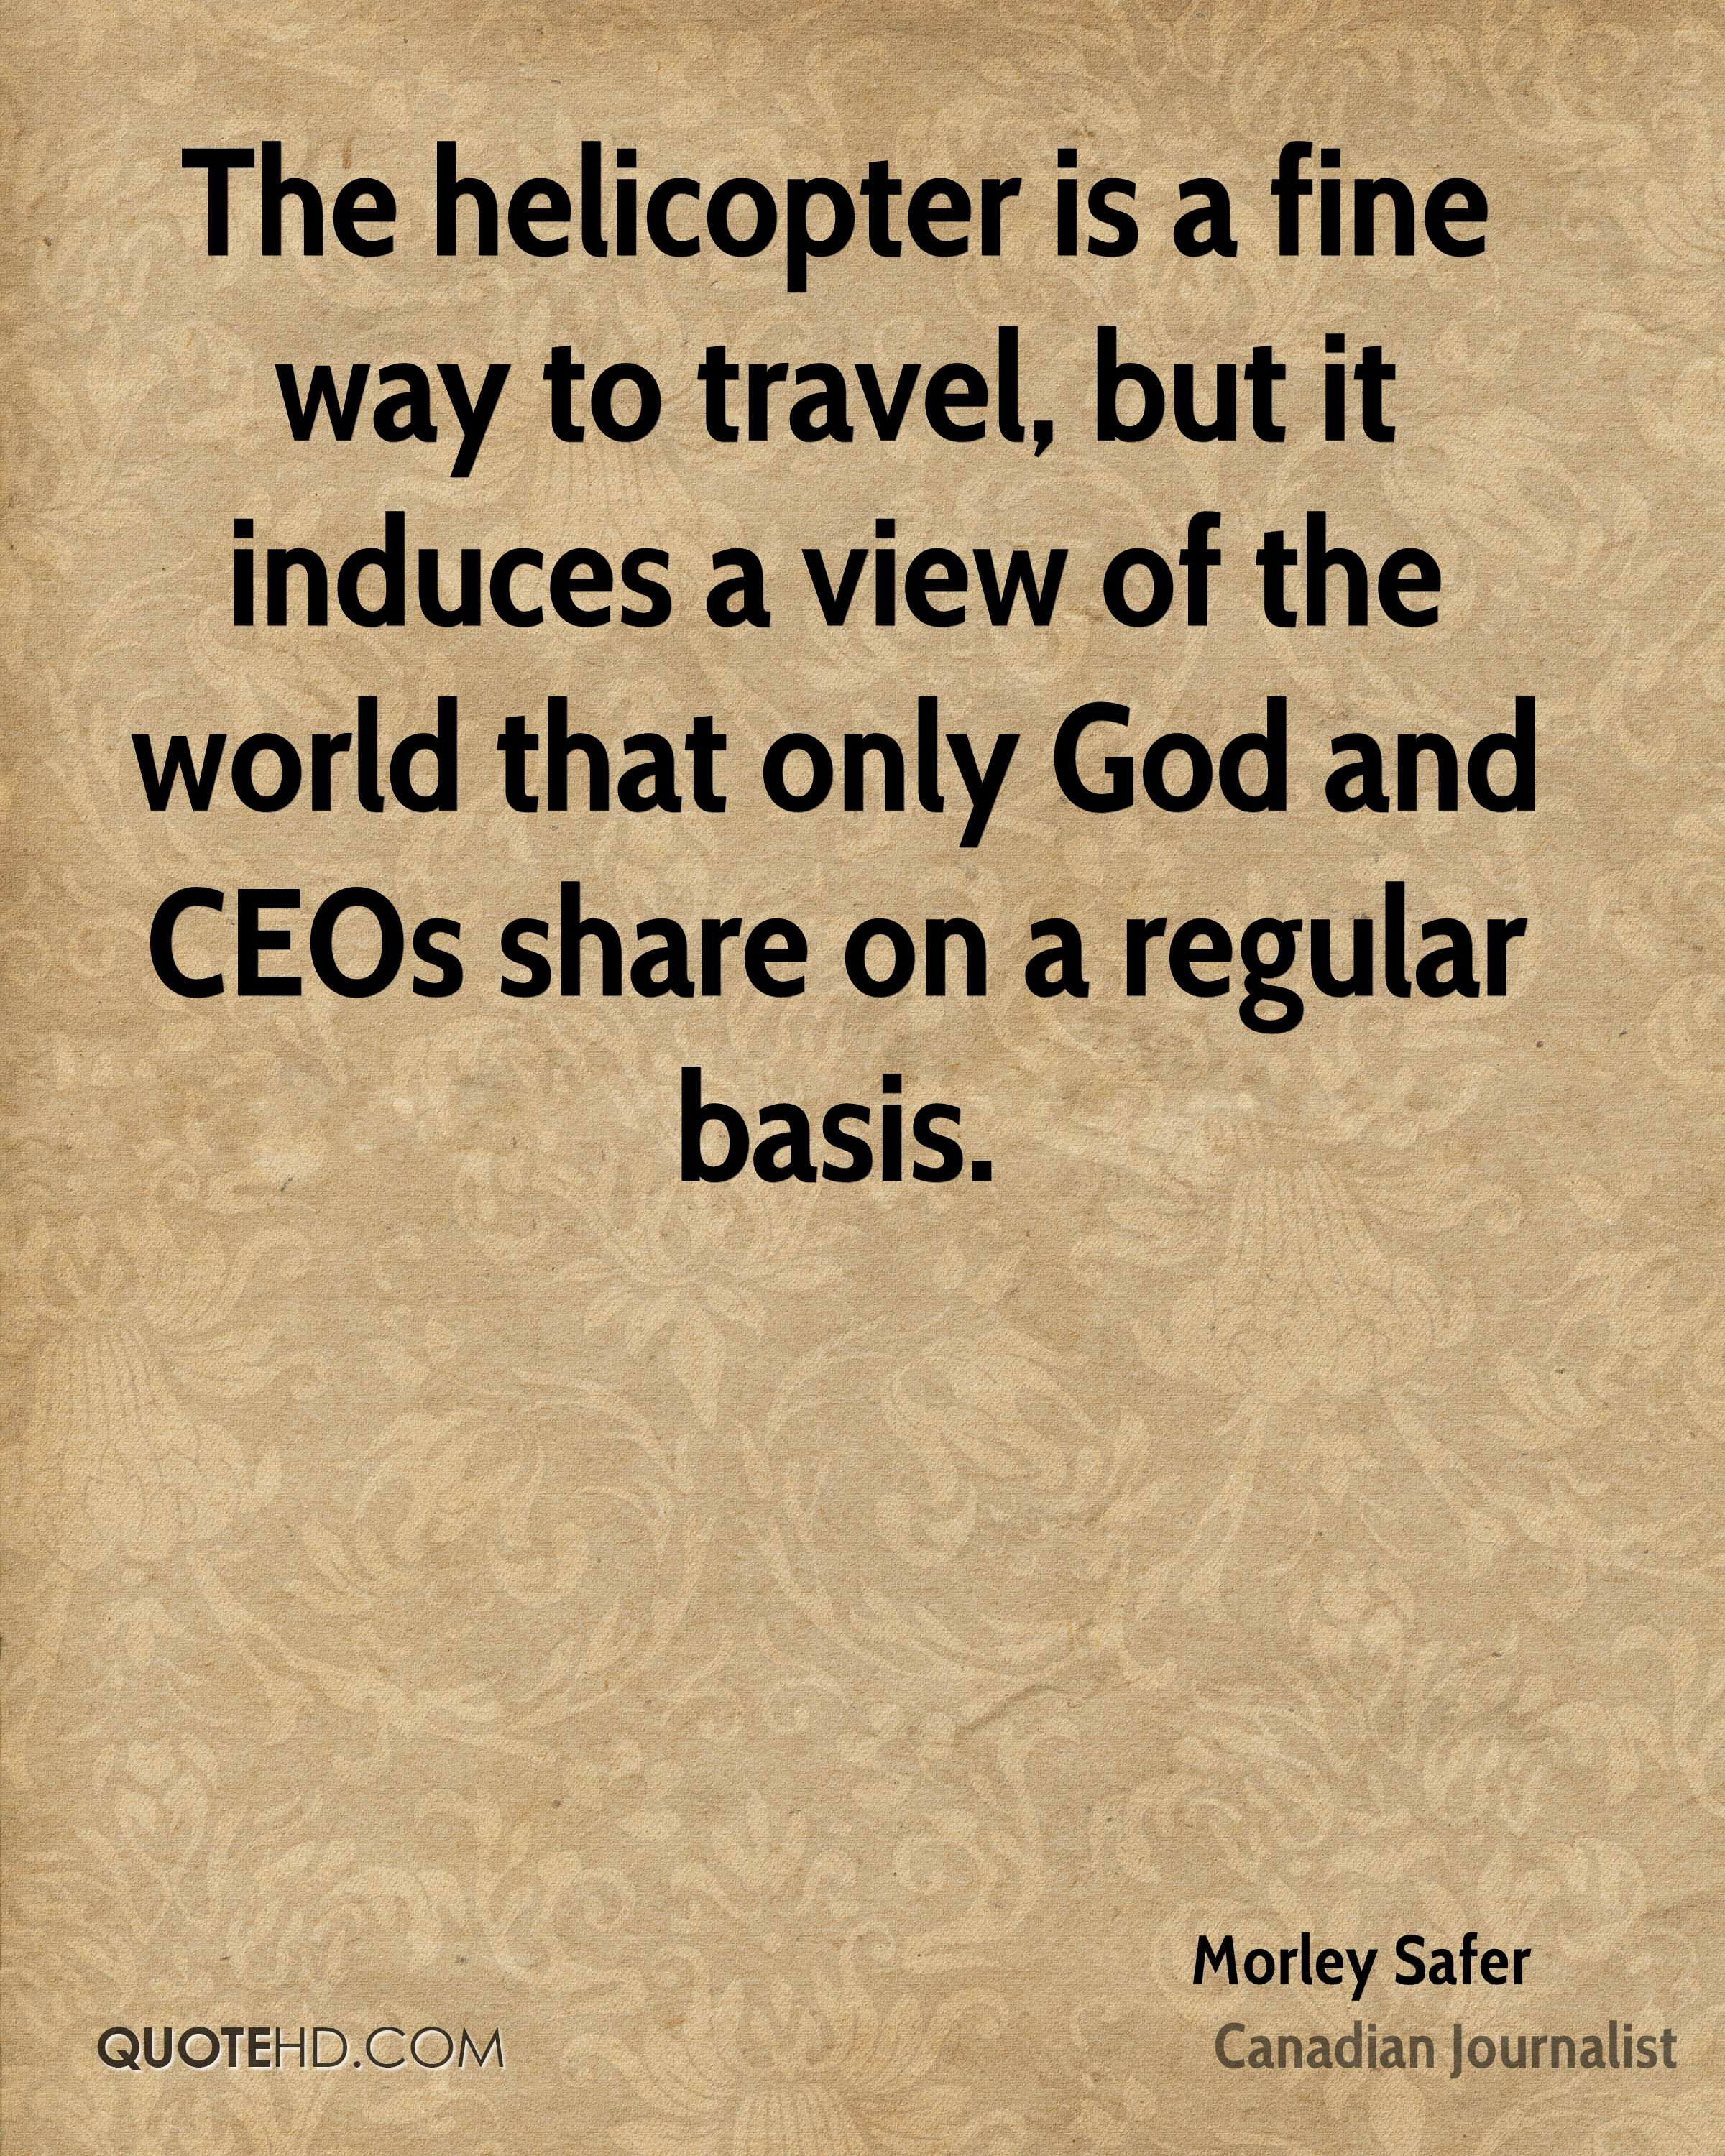 The helicopter is a fine way to travel, but it induces a view of the world that only God and CEOs share on a regular basis.